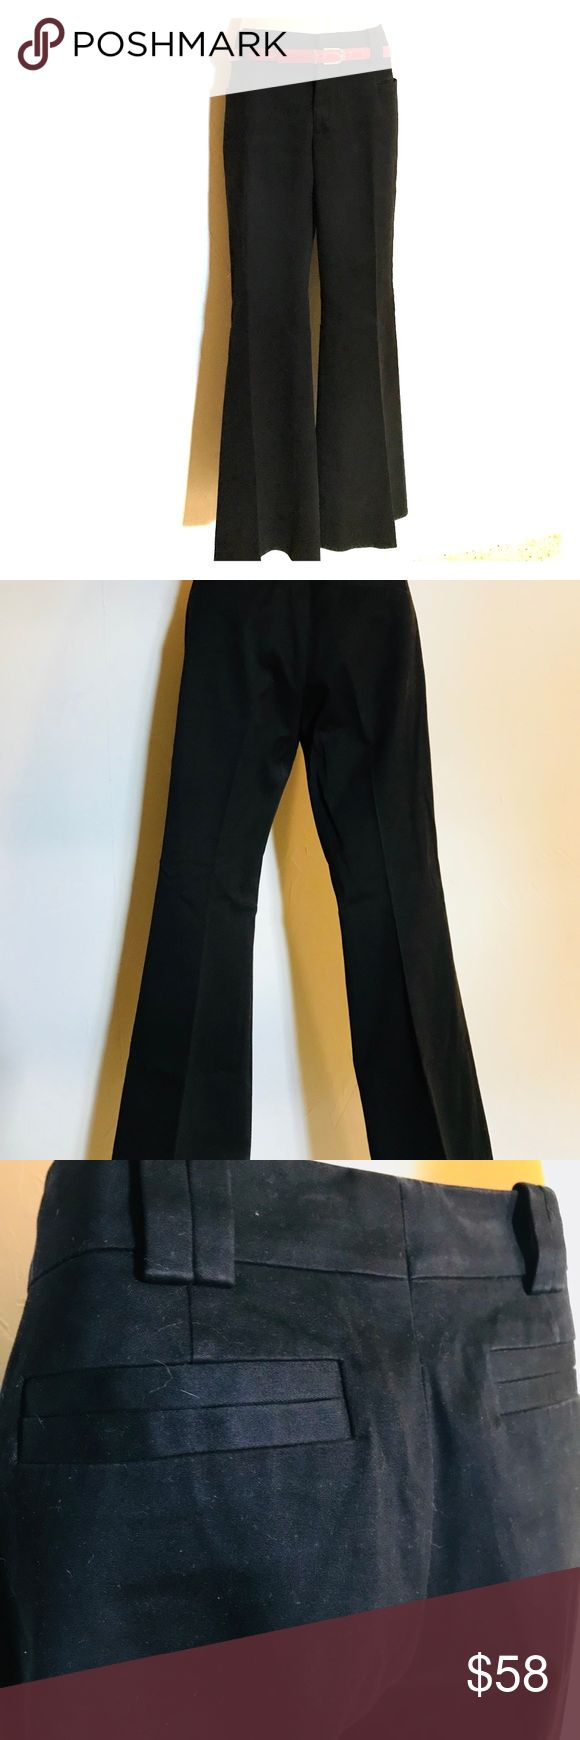 """Gucci Dress Pants. EUC Black Gucci Dress Pants. Wool blend. Flare ankle. Square pockets. Italian size 42, US 6 conversion. 15 1/2"""" across waist. 8 1/2"""" front rise. 9 1/2"""" across thigh. 11 1/2"""" across ankle opening. 39 1/2"""" length. 31"""" inseam. Reposhing these fantastic Pants after a photo shoot. They are in very good condition. No stains or wear at hem.  Shown with vintage Dior belt and cache sweater. Gucci Pants"""